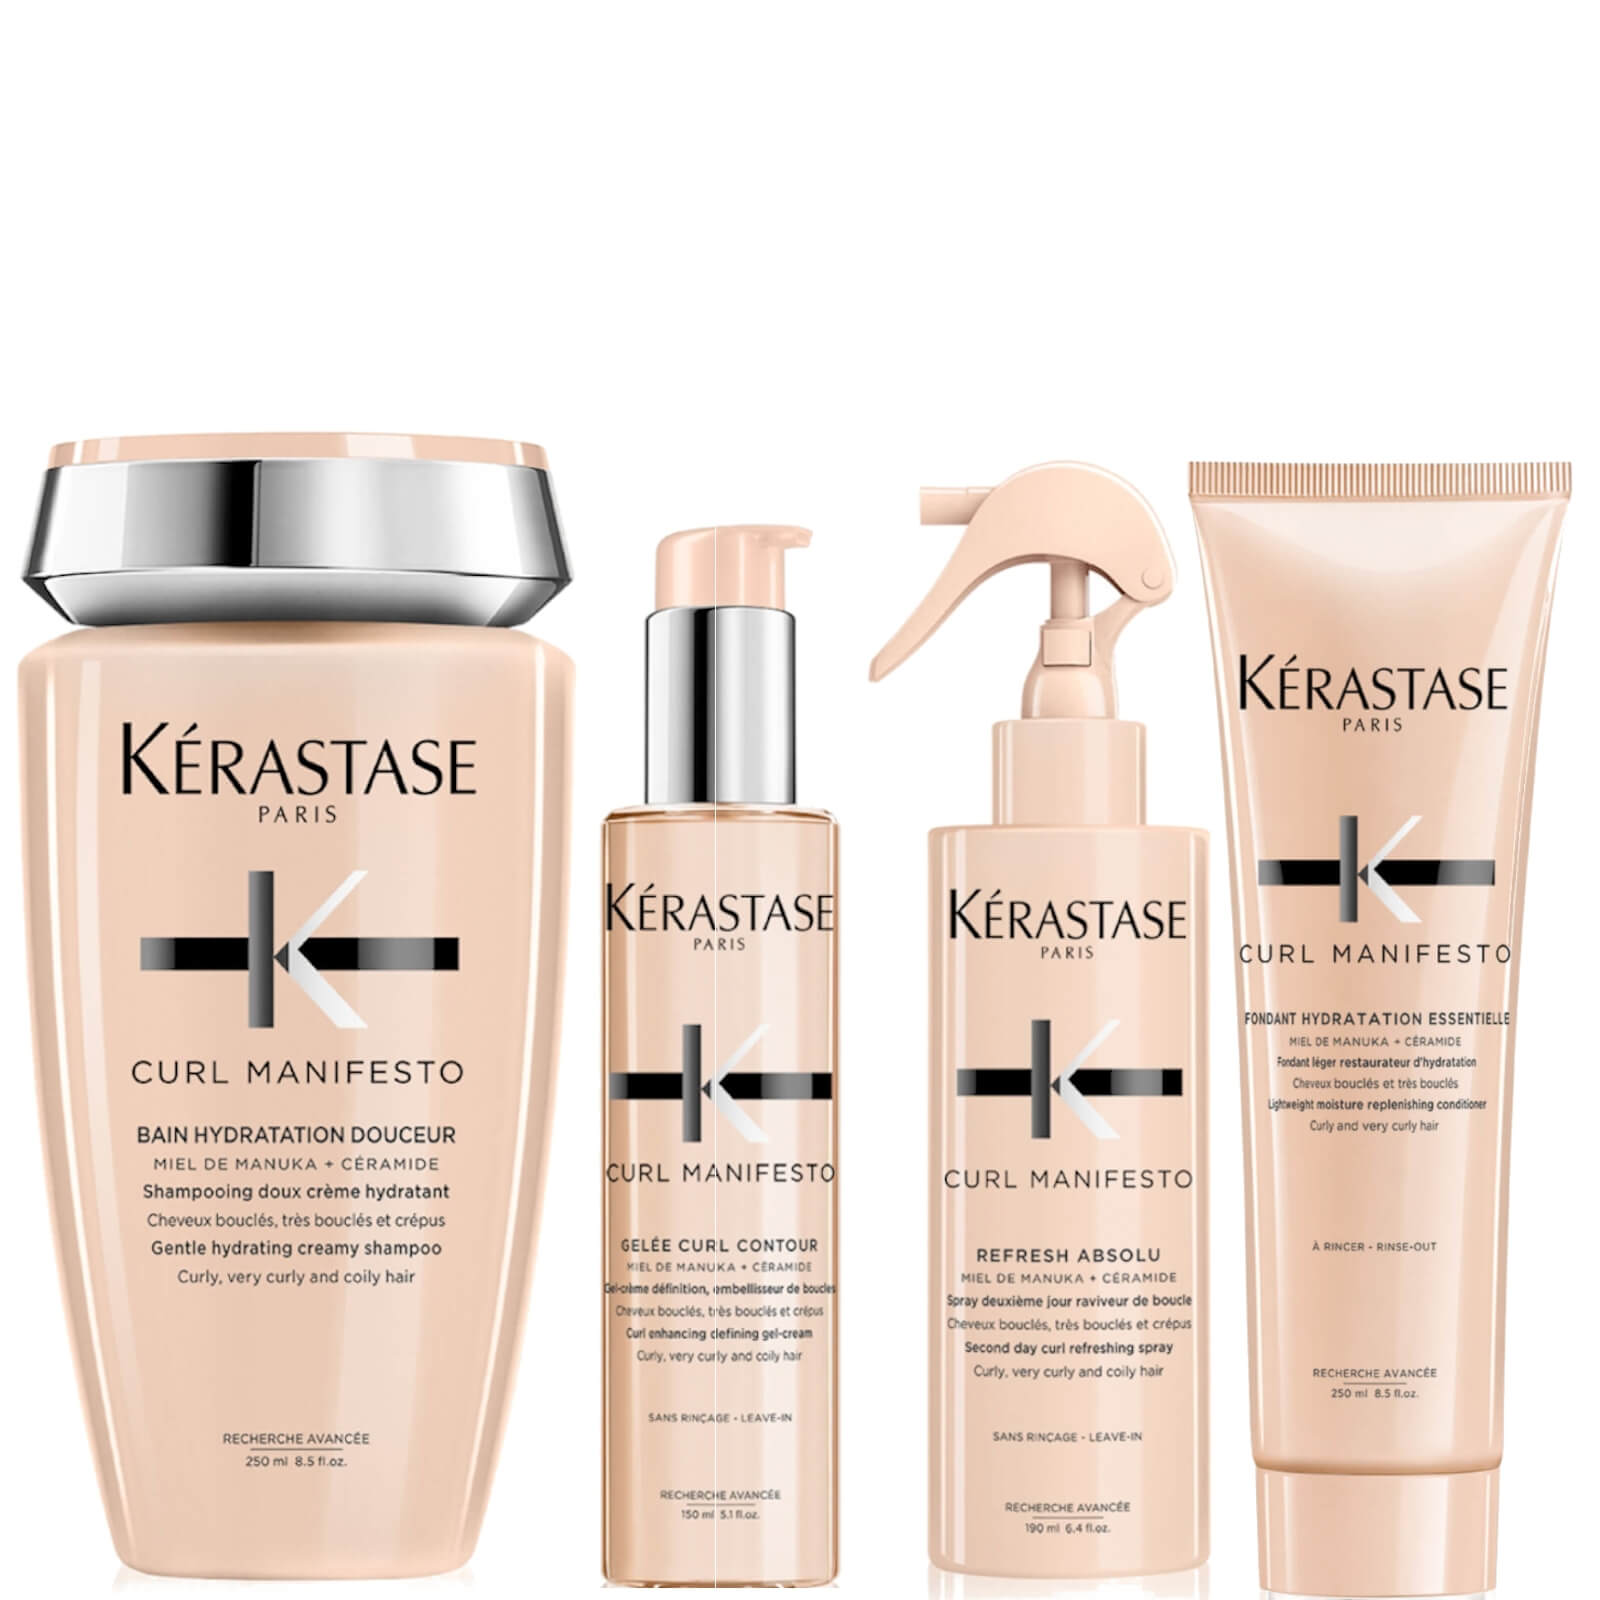 Kérastase Complete Care For Wavy To Curly Hair Bundle